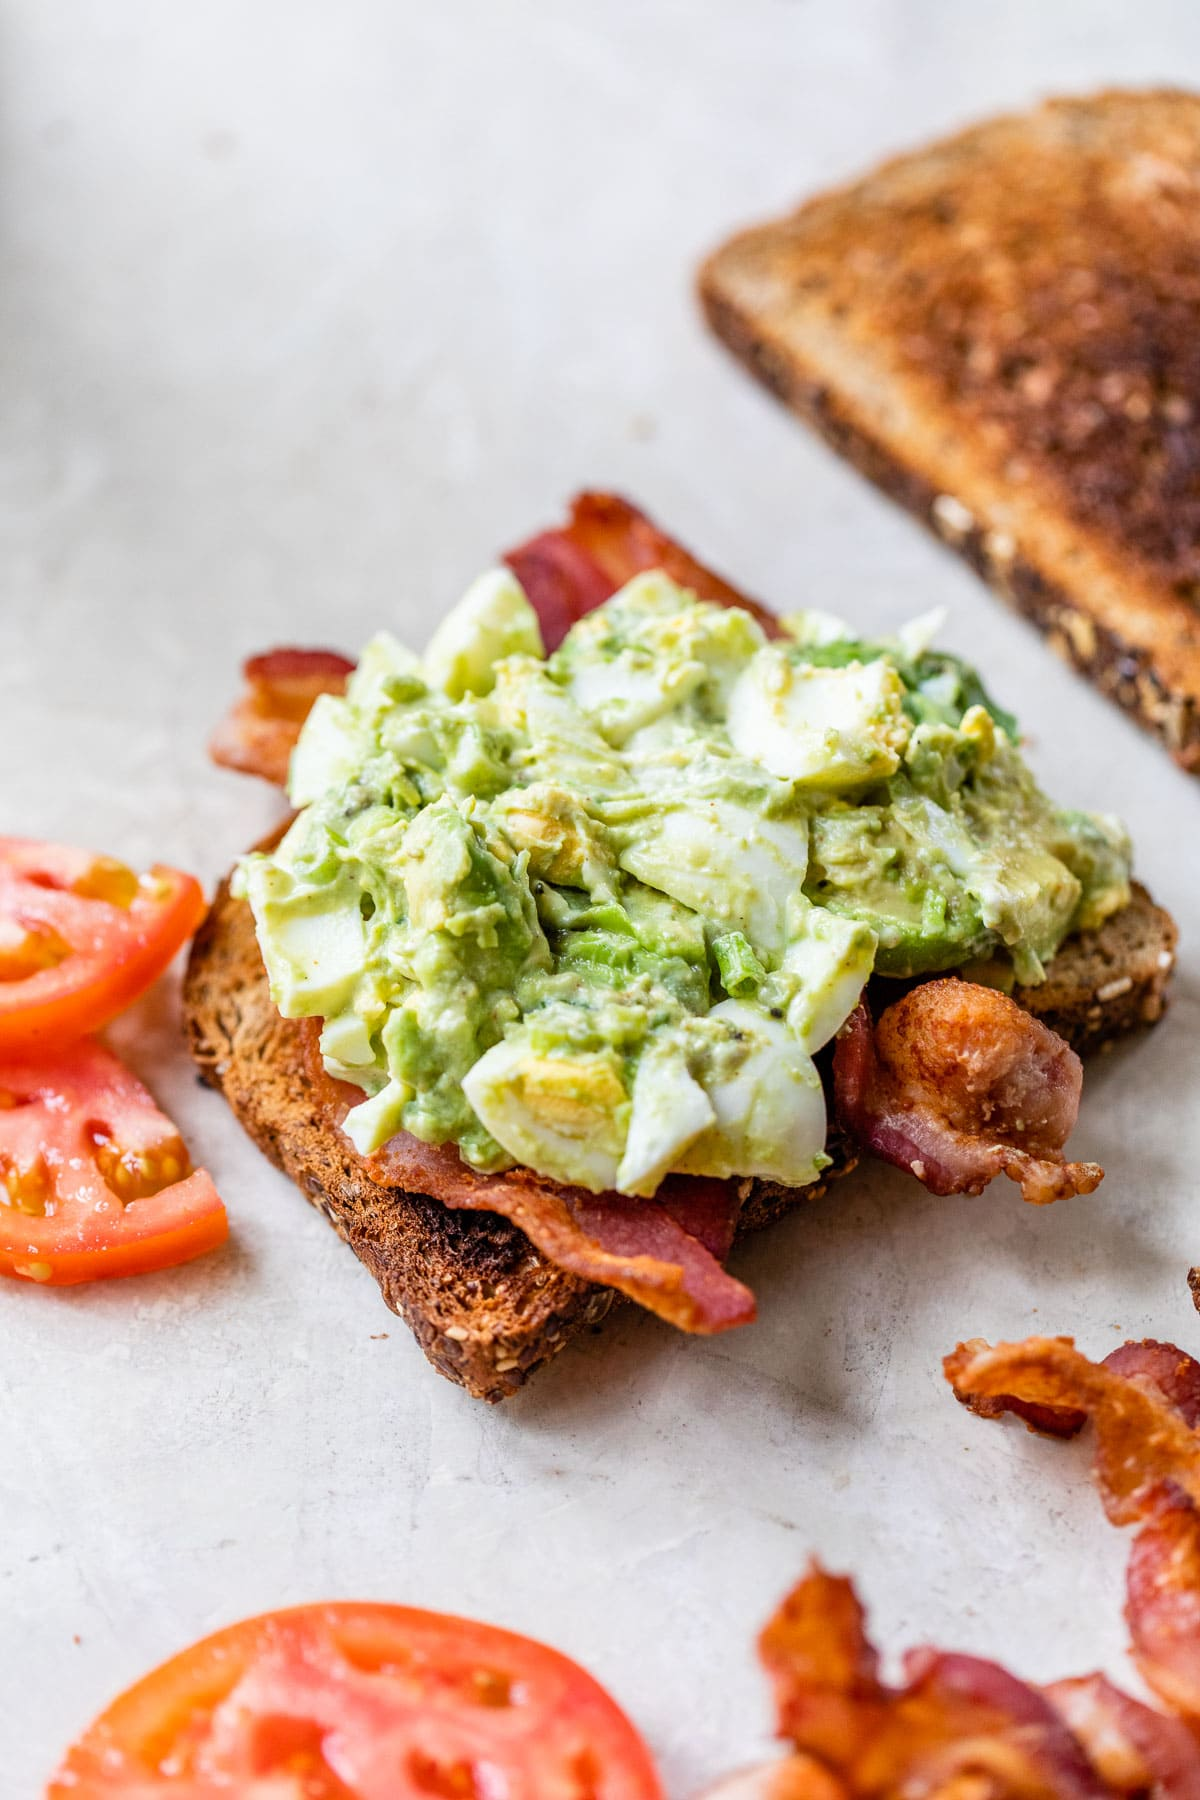 Avocado Egg Salad Sandwiches with Bacon. The best healthy egg salad!